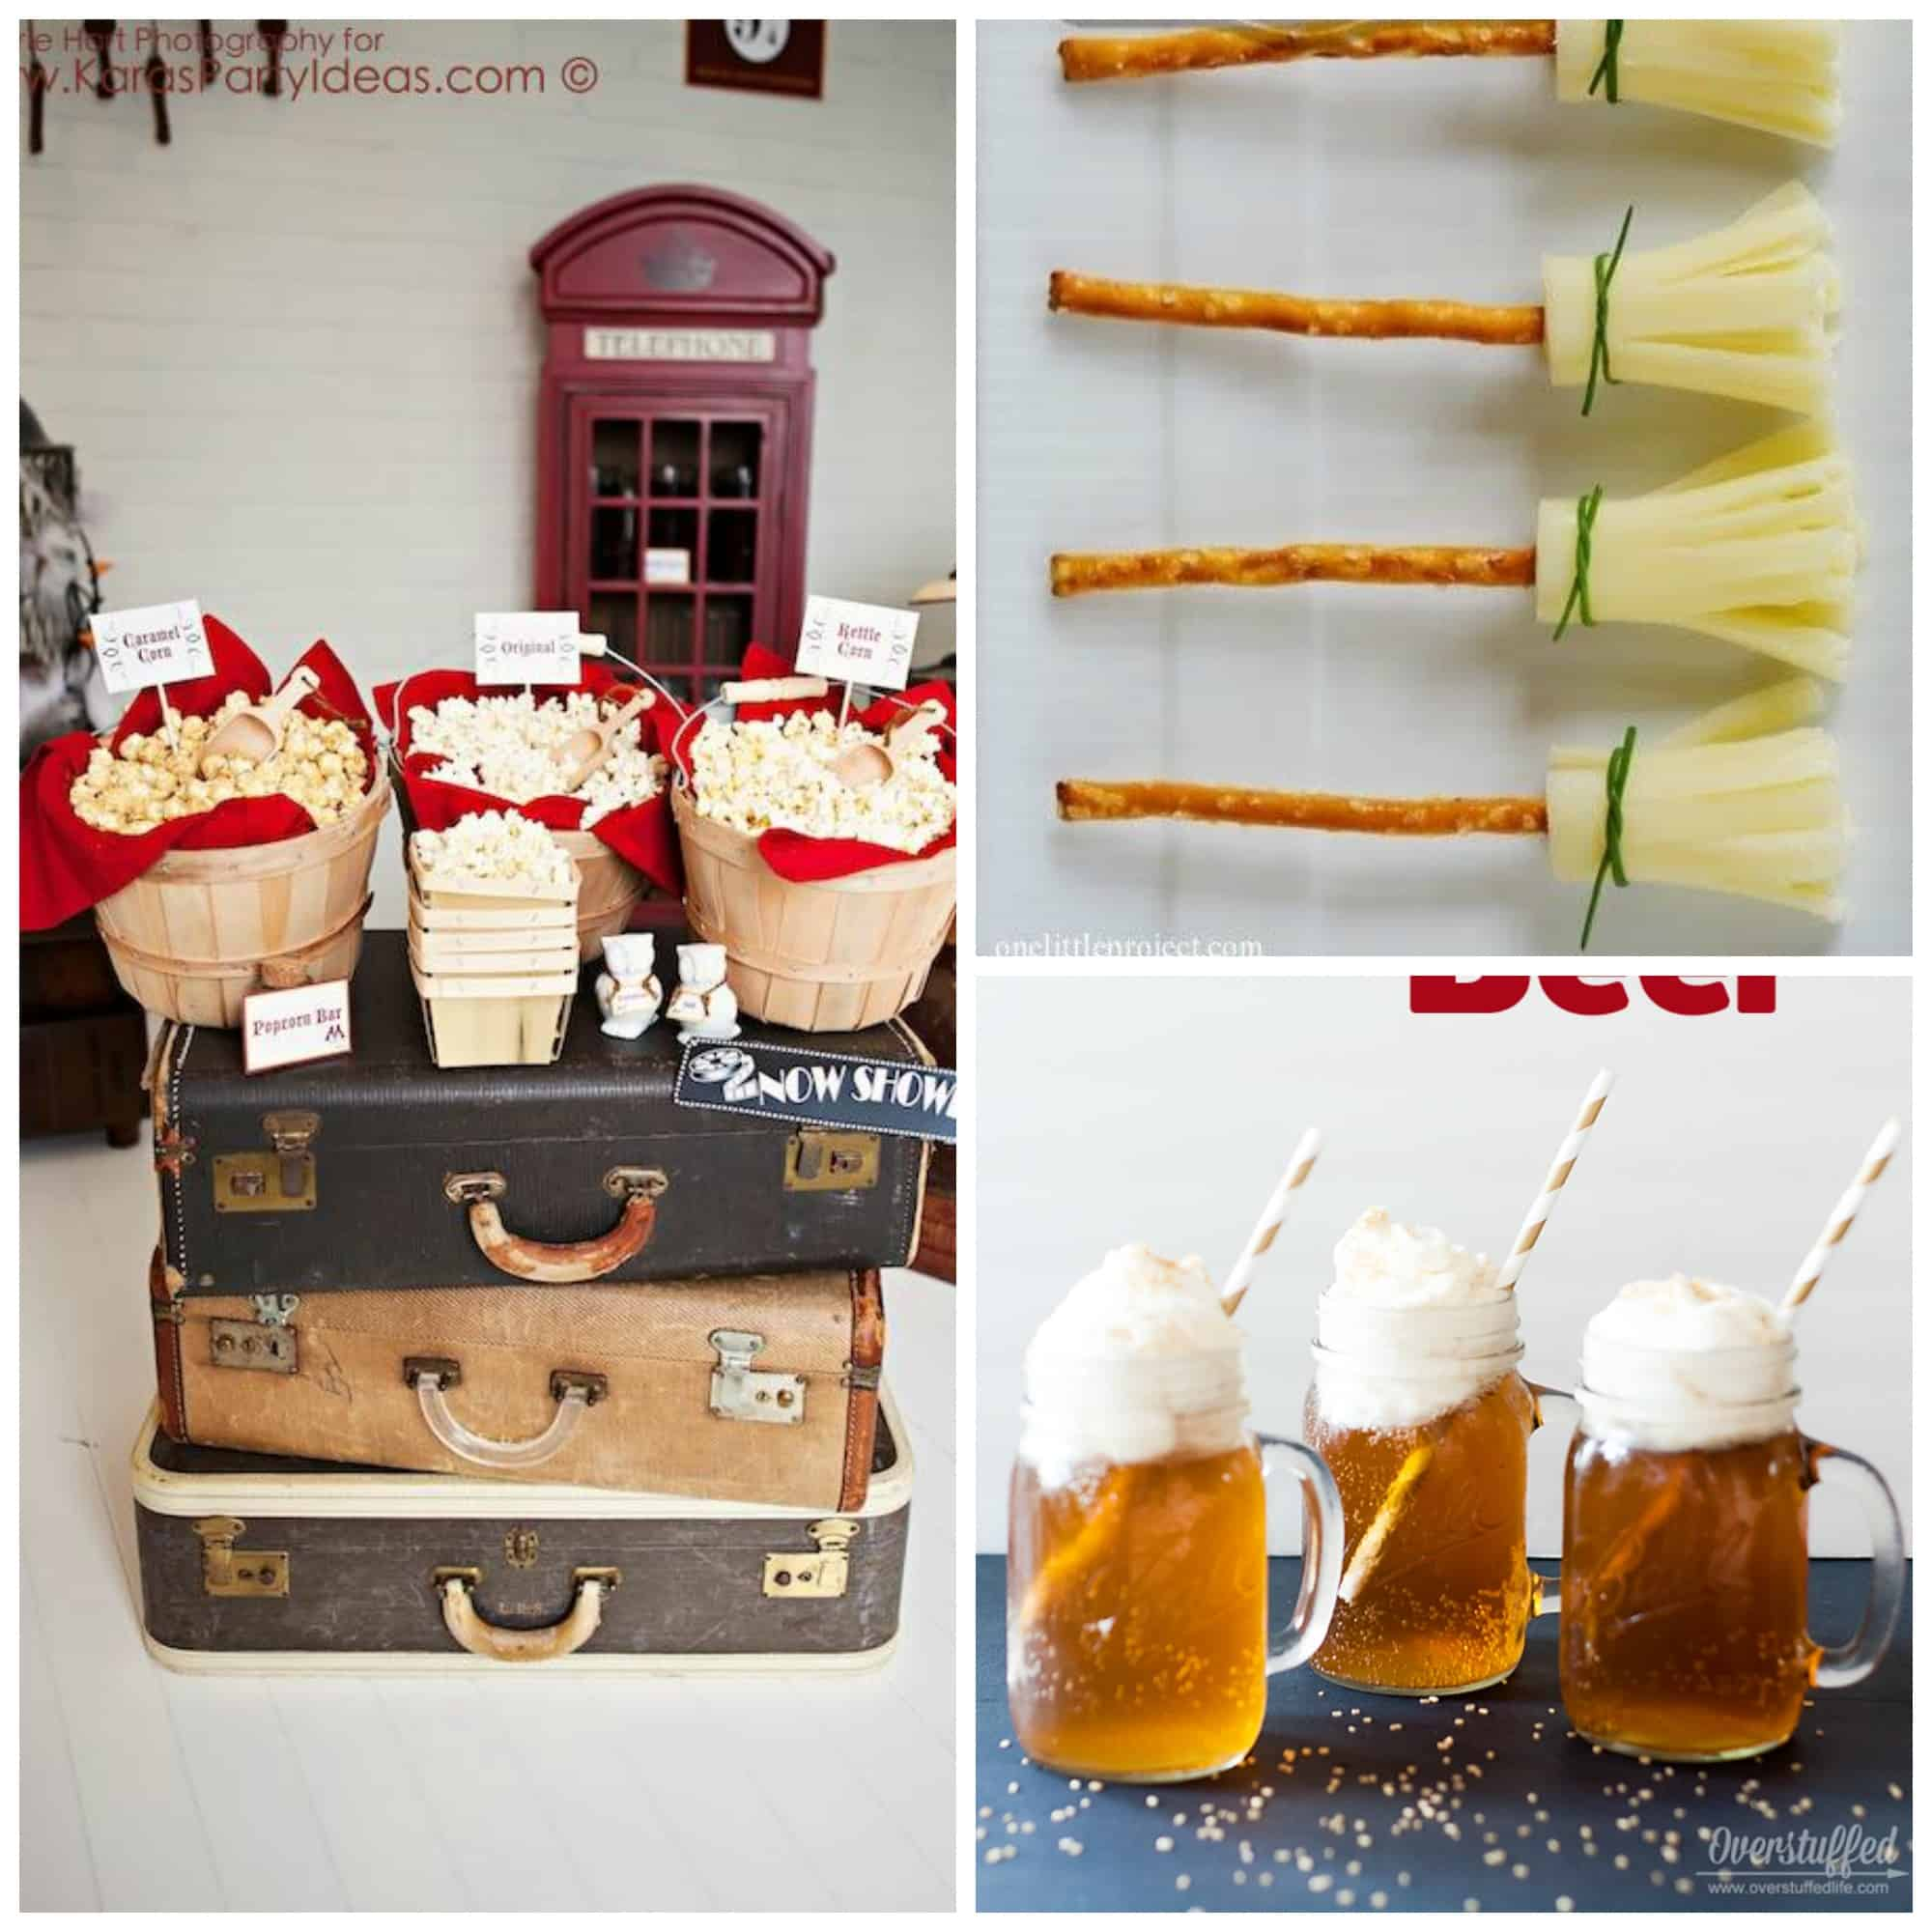 See many Harry Potter Party Ideas, Harry Potter food ideas, invitations, and more! #harrypotter #harrypotterparty #harrypotterpartyideas